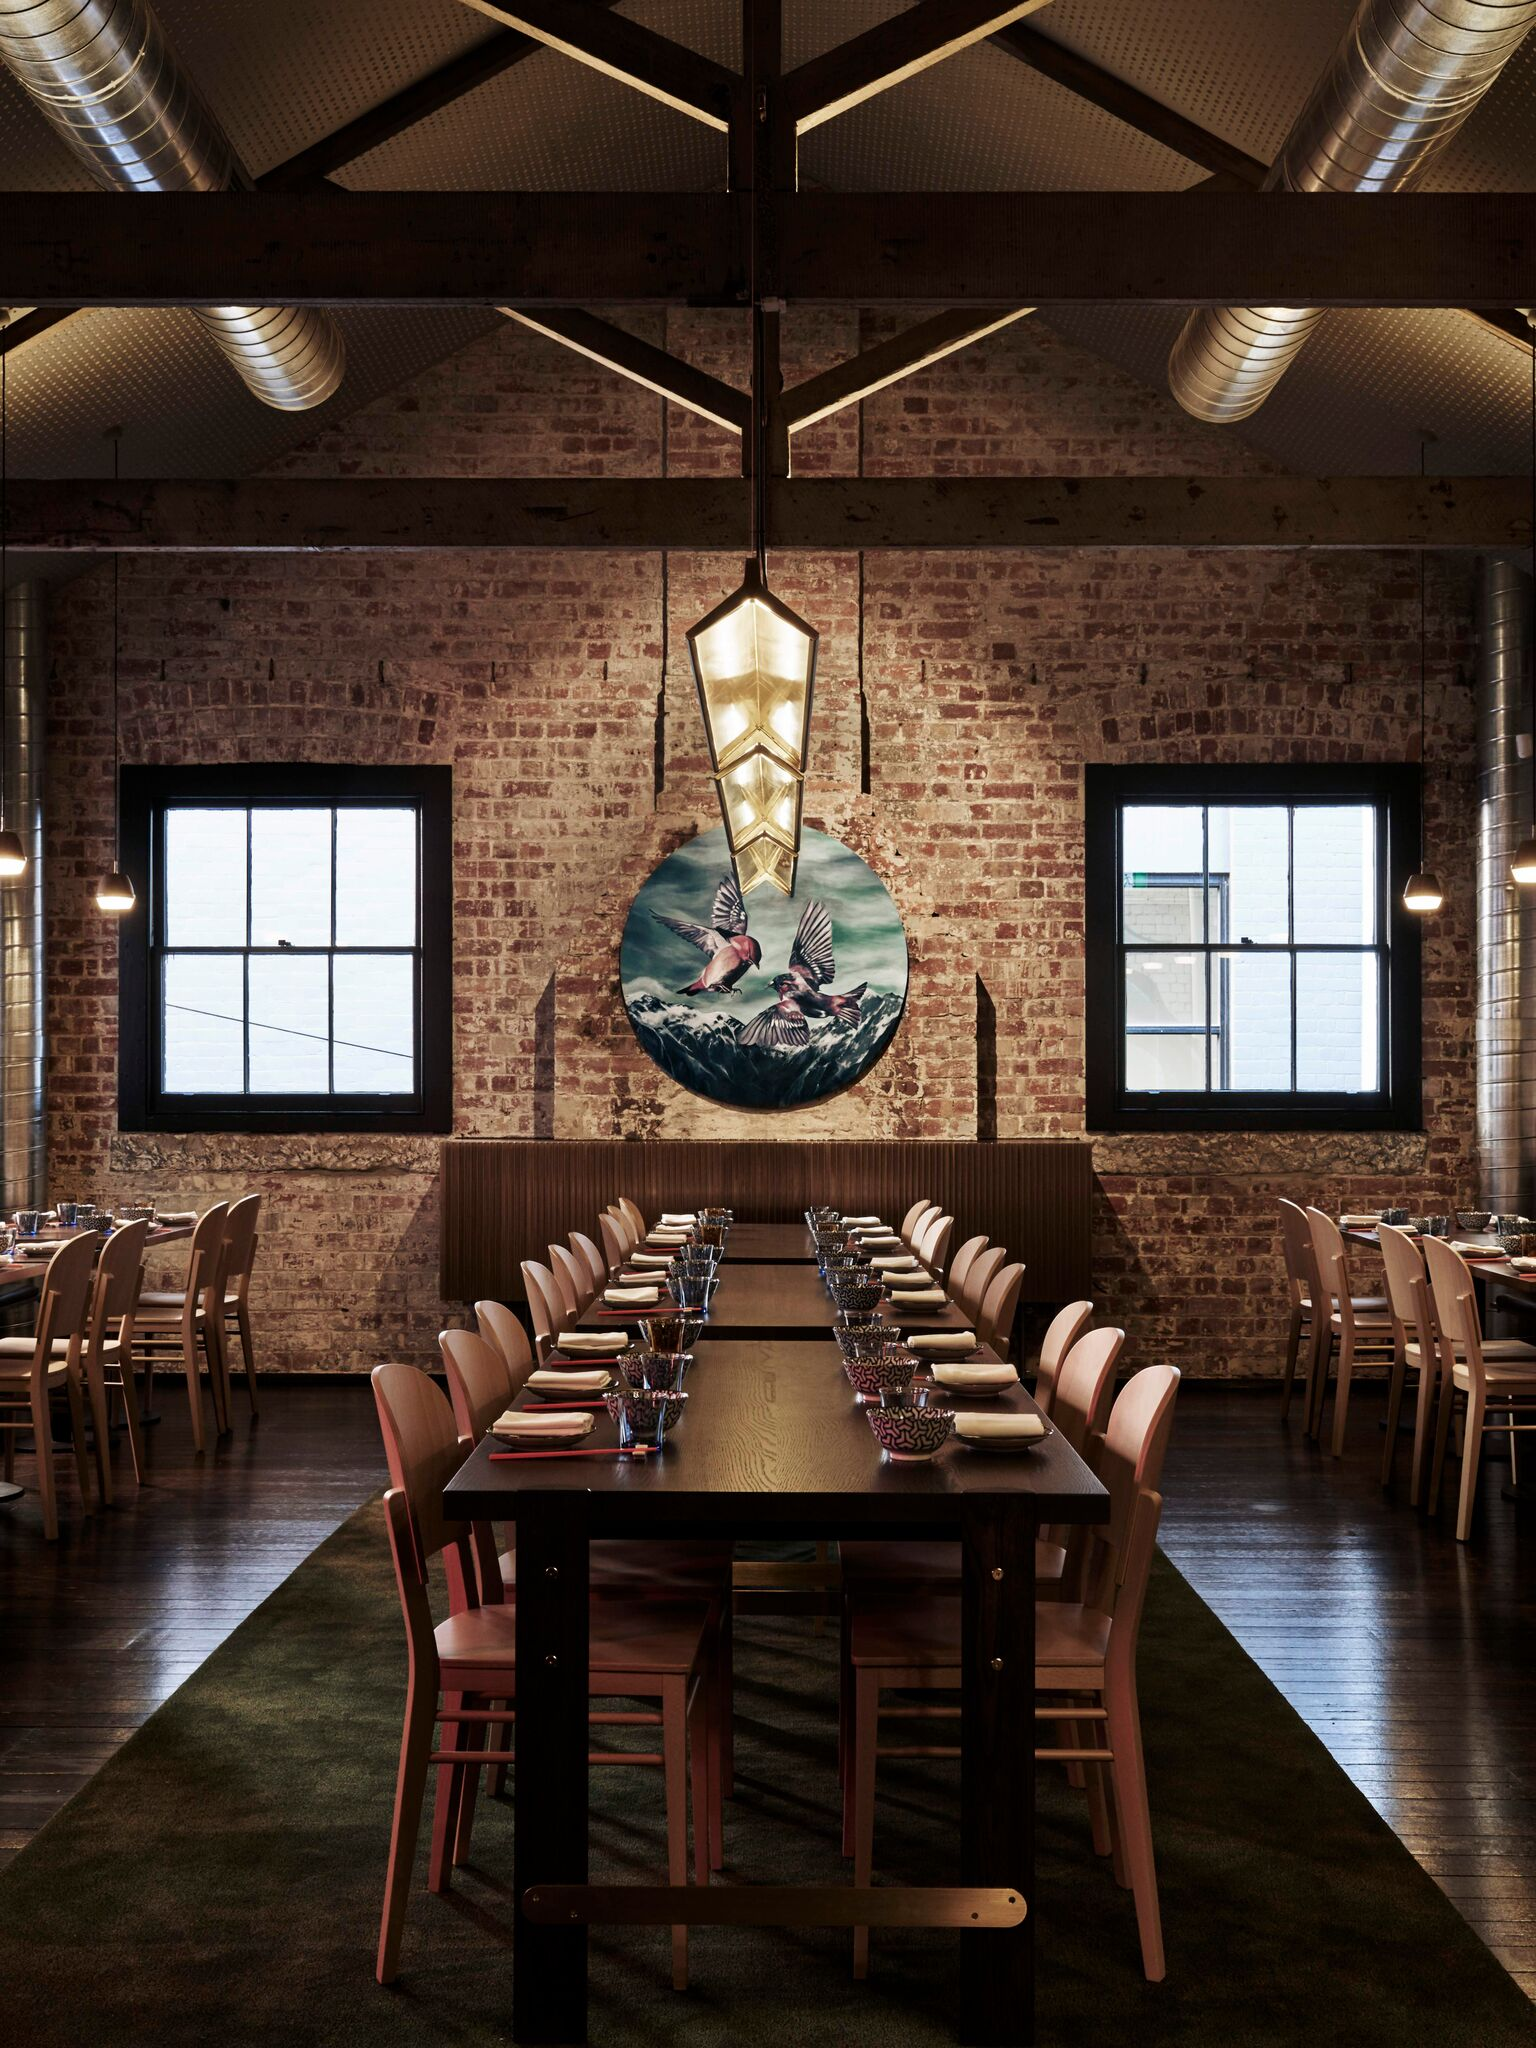 Flinders Lane - Techne Architects - Australian Architecture and Interior Design - Articles & News - The Local Project - Image 4